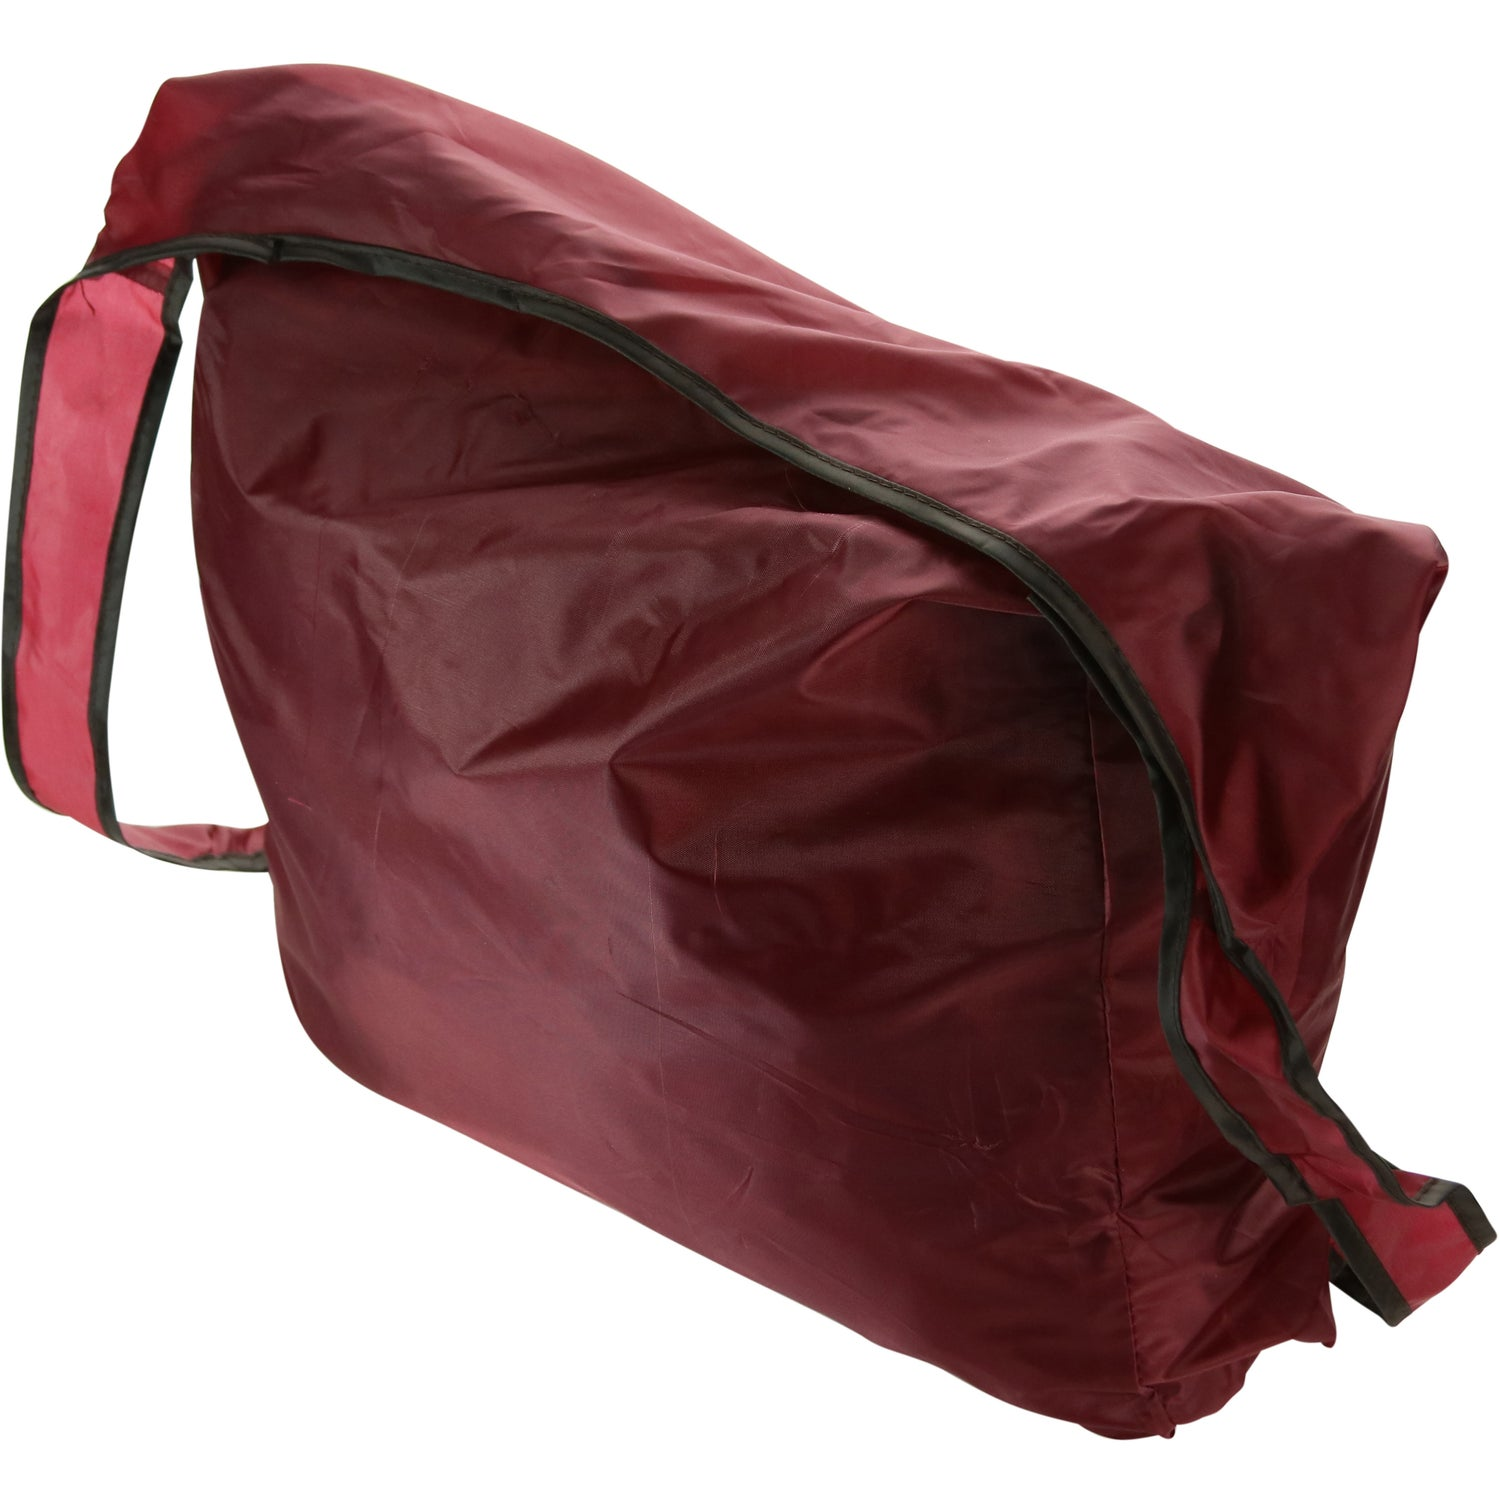 99cc13648 CLICK HERE to Order RPET Fold Away Sling Bags Printed with Your Logo for   3.06 Ea.